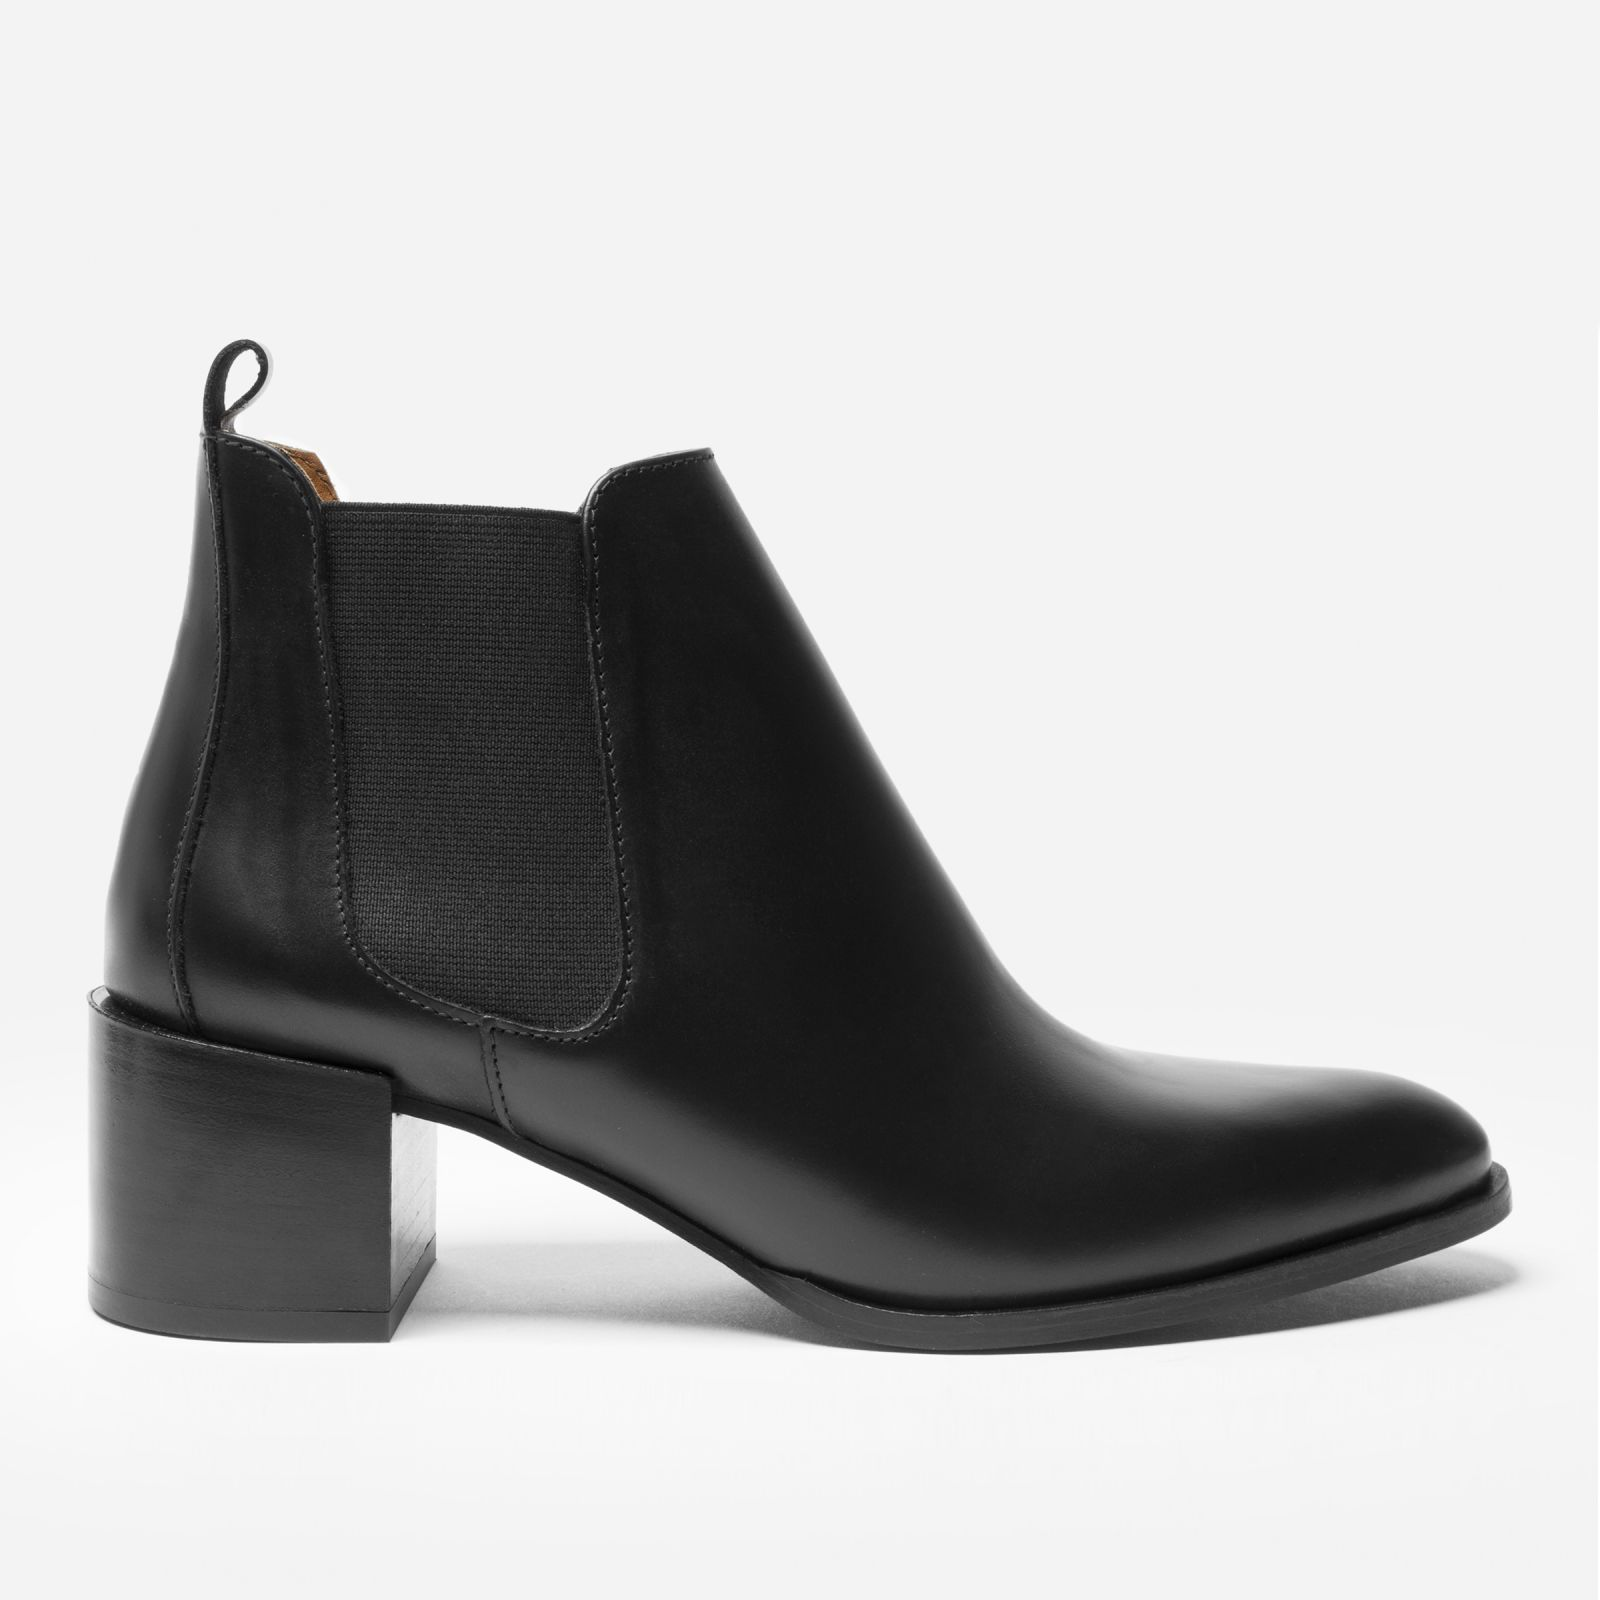 women's heeled booties by everlane in black, size 5.5